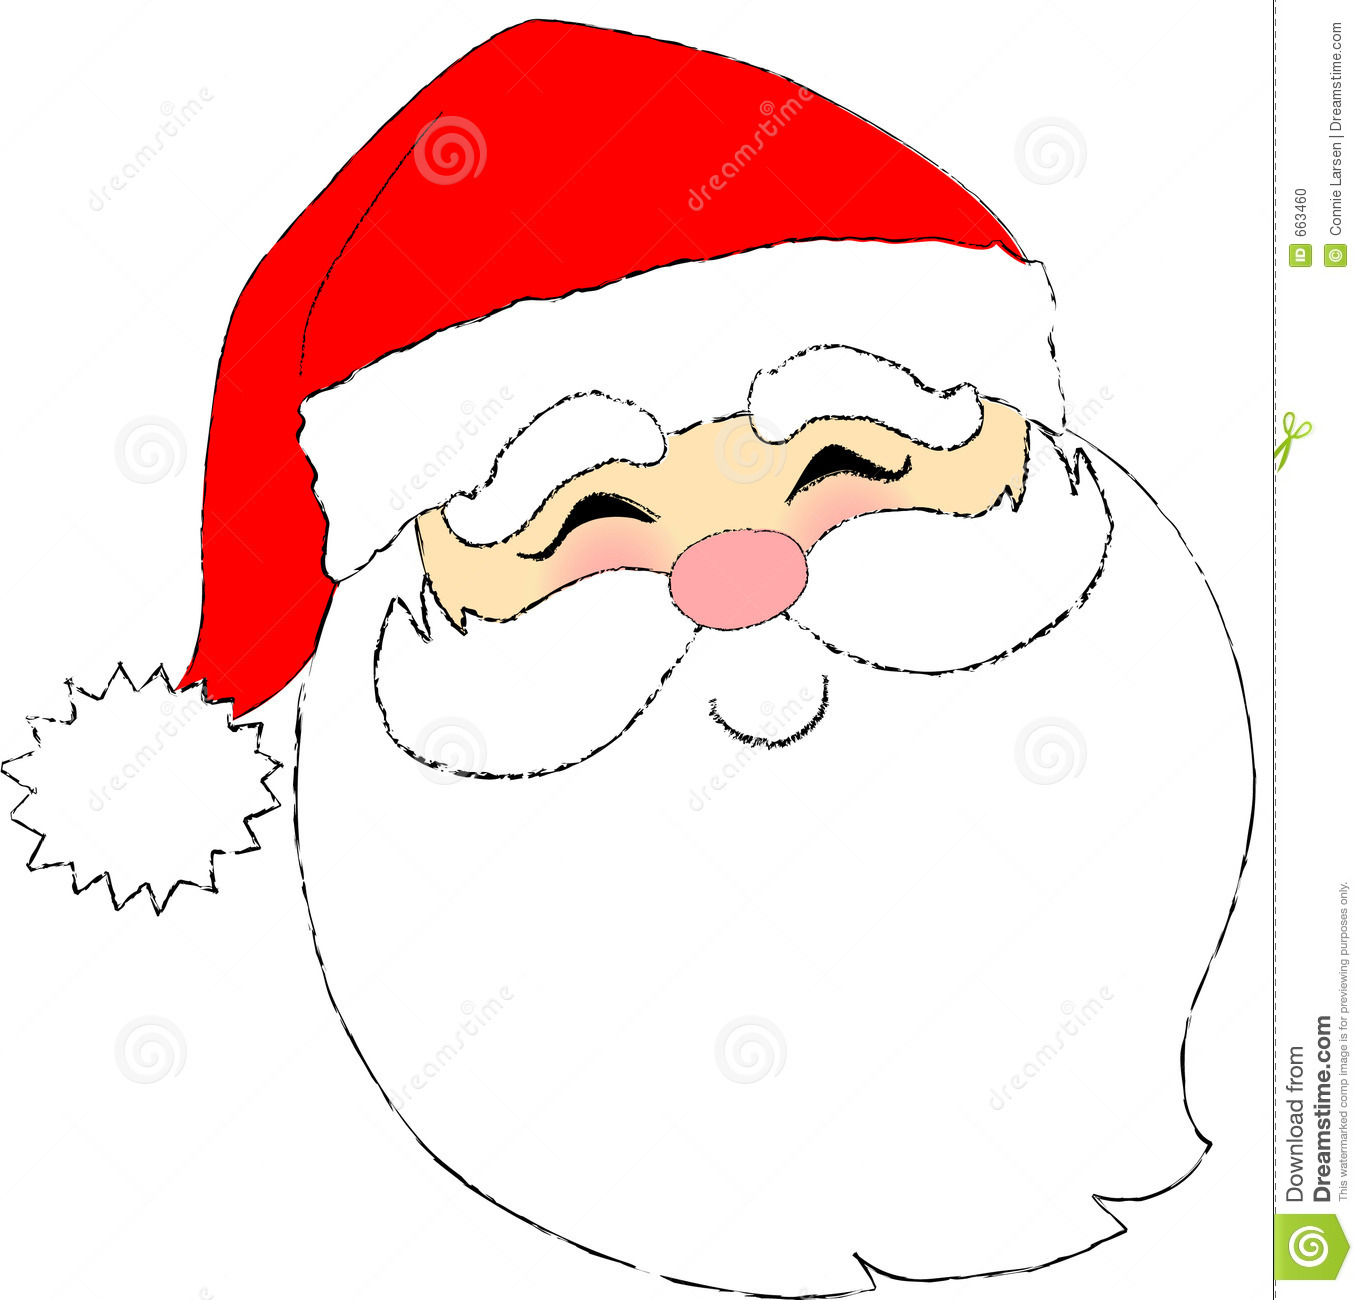 Santa Face Stock Photo - Image: 663460-Santa Face Stock Photo - Image: 663460-7